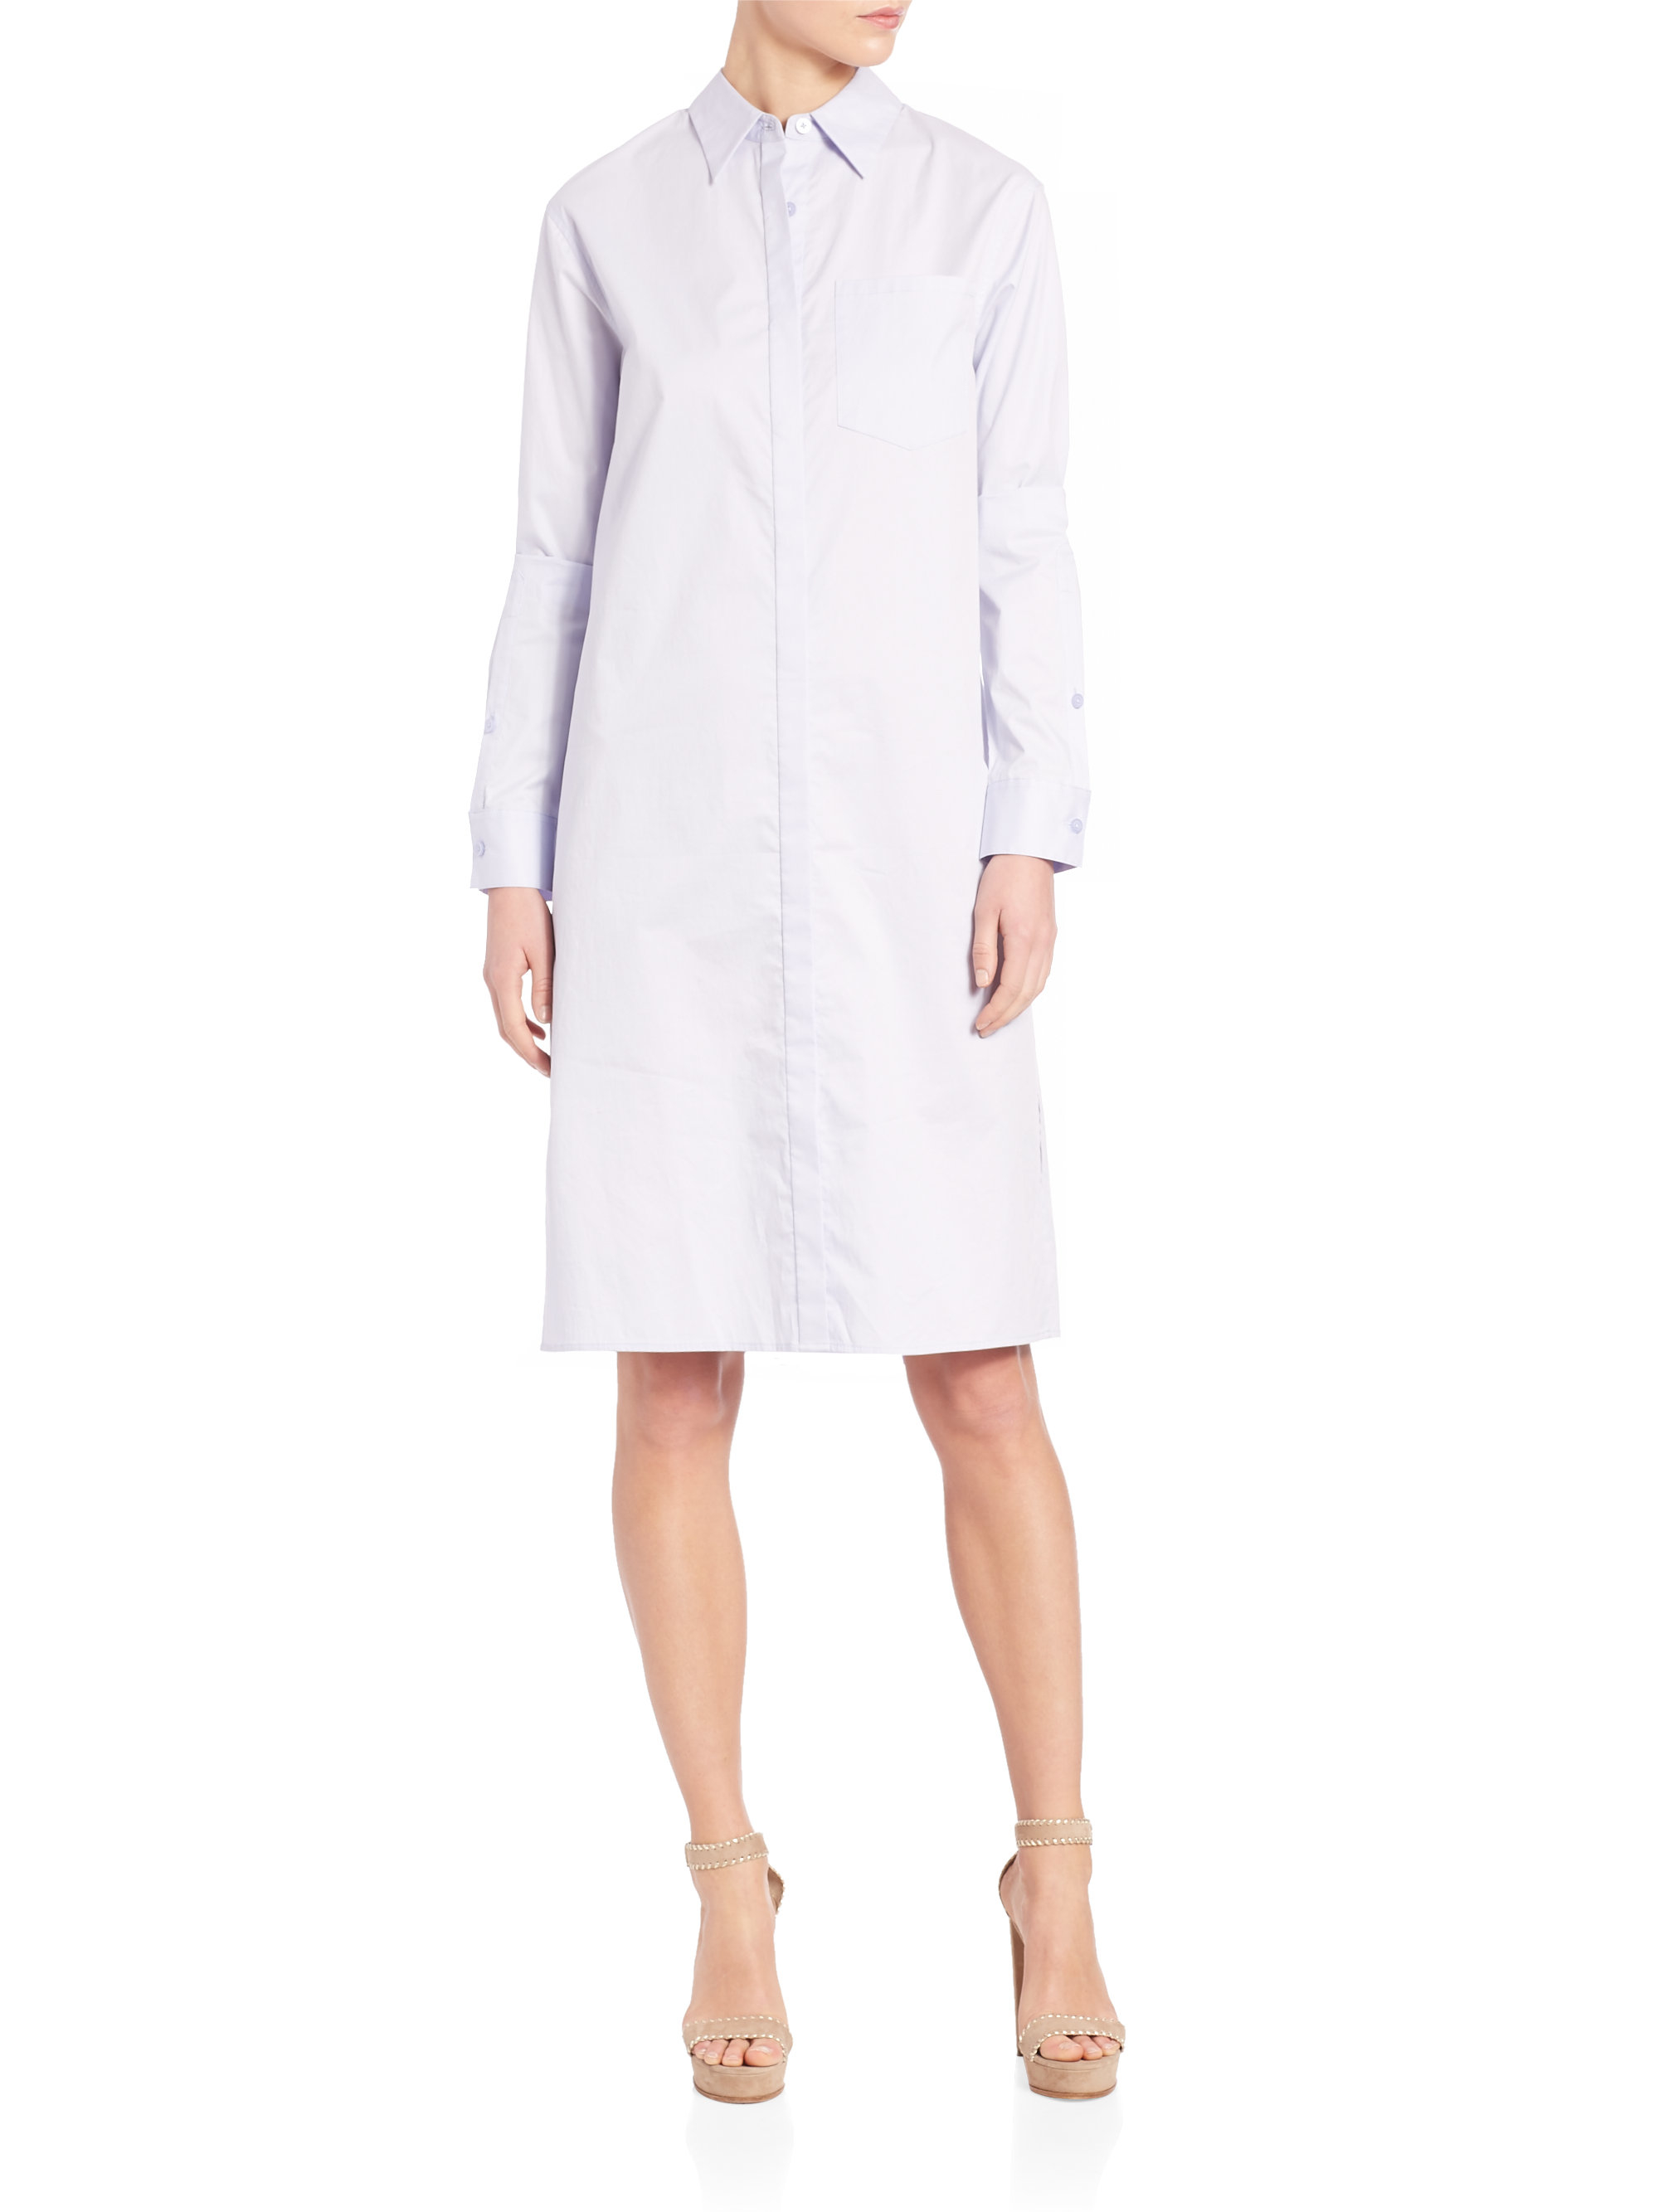 a2bf851c9a9 Lyst - DKNY Long Sleeve Collared Shirtdress in White